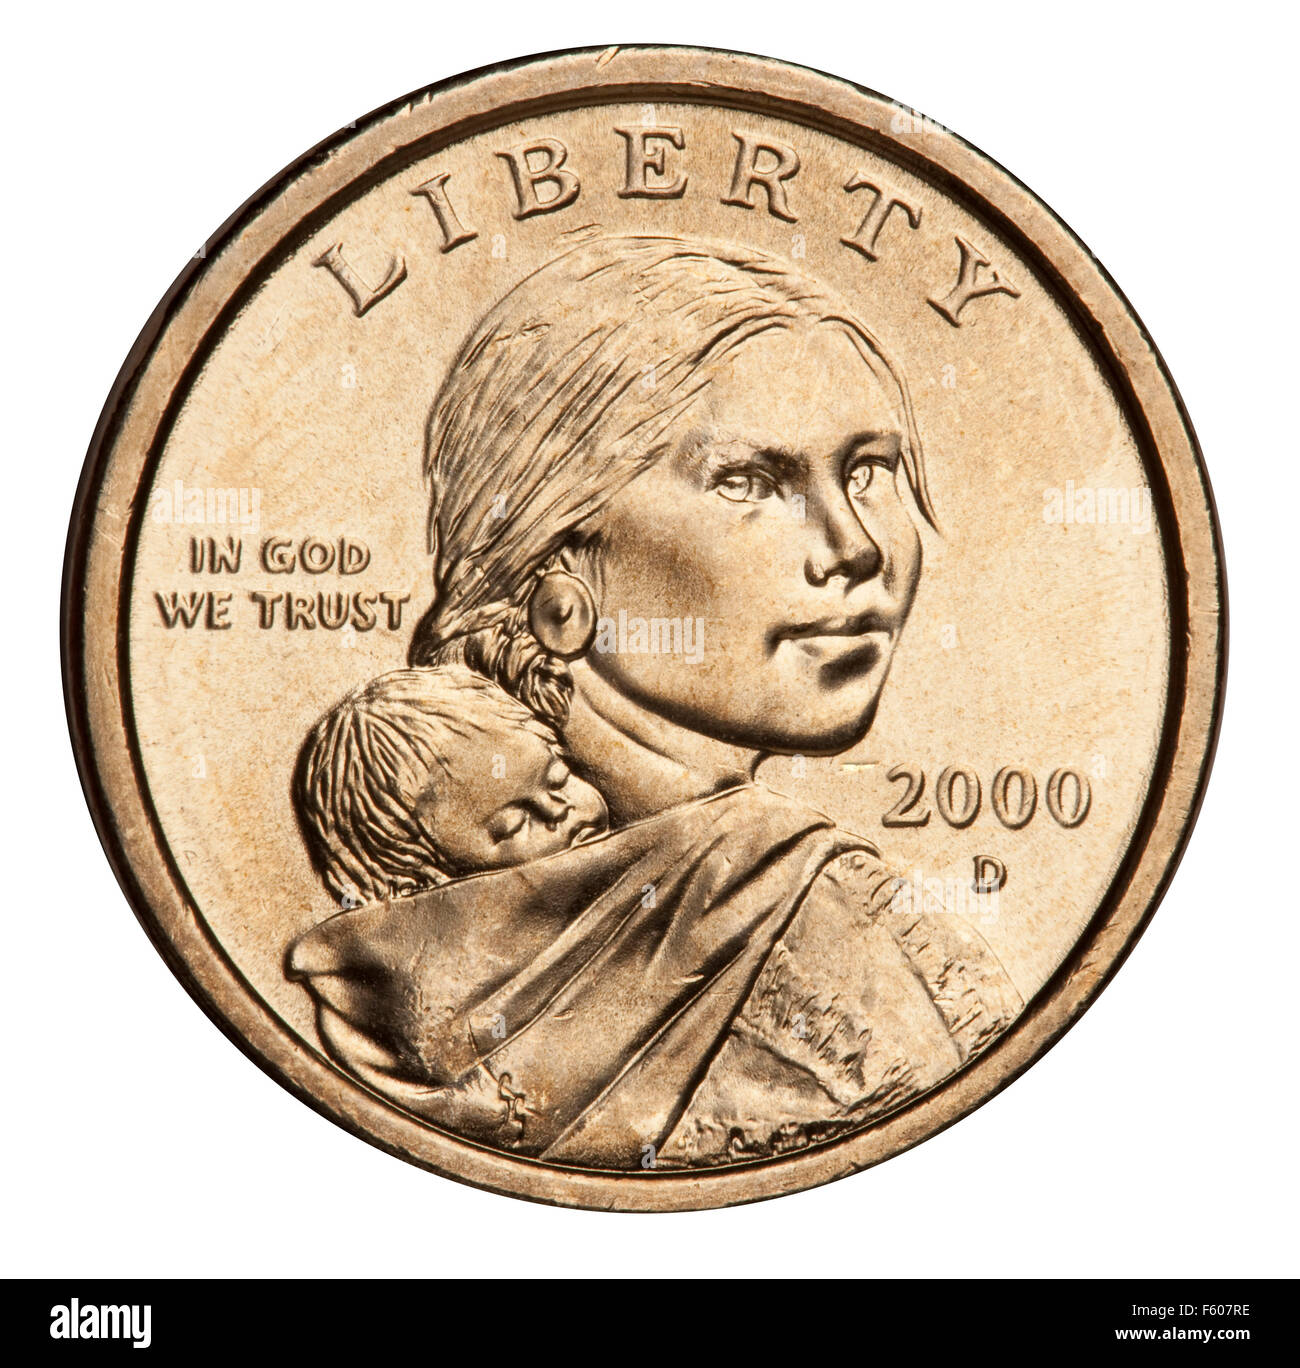 Sacagawea dollar coin 2000 2008 glenna goodacre 39 s for 2000 dollar cabin